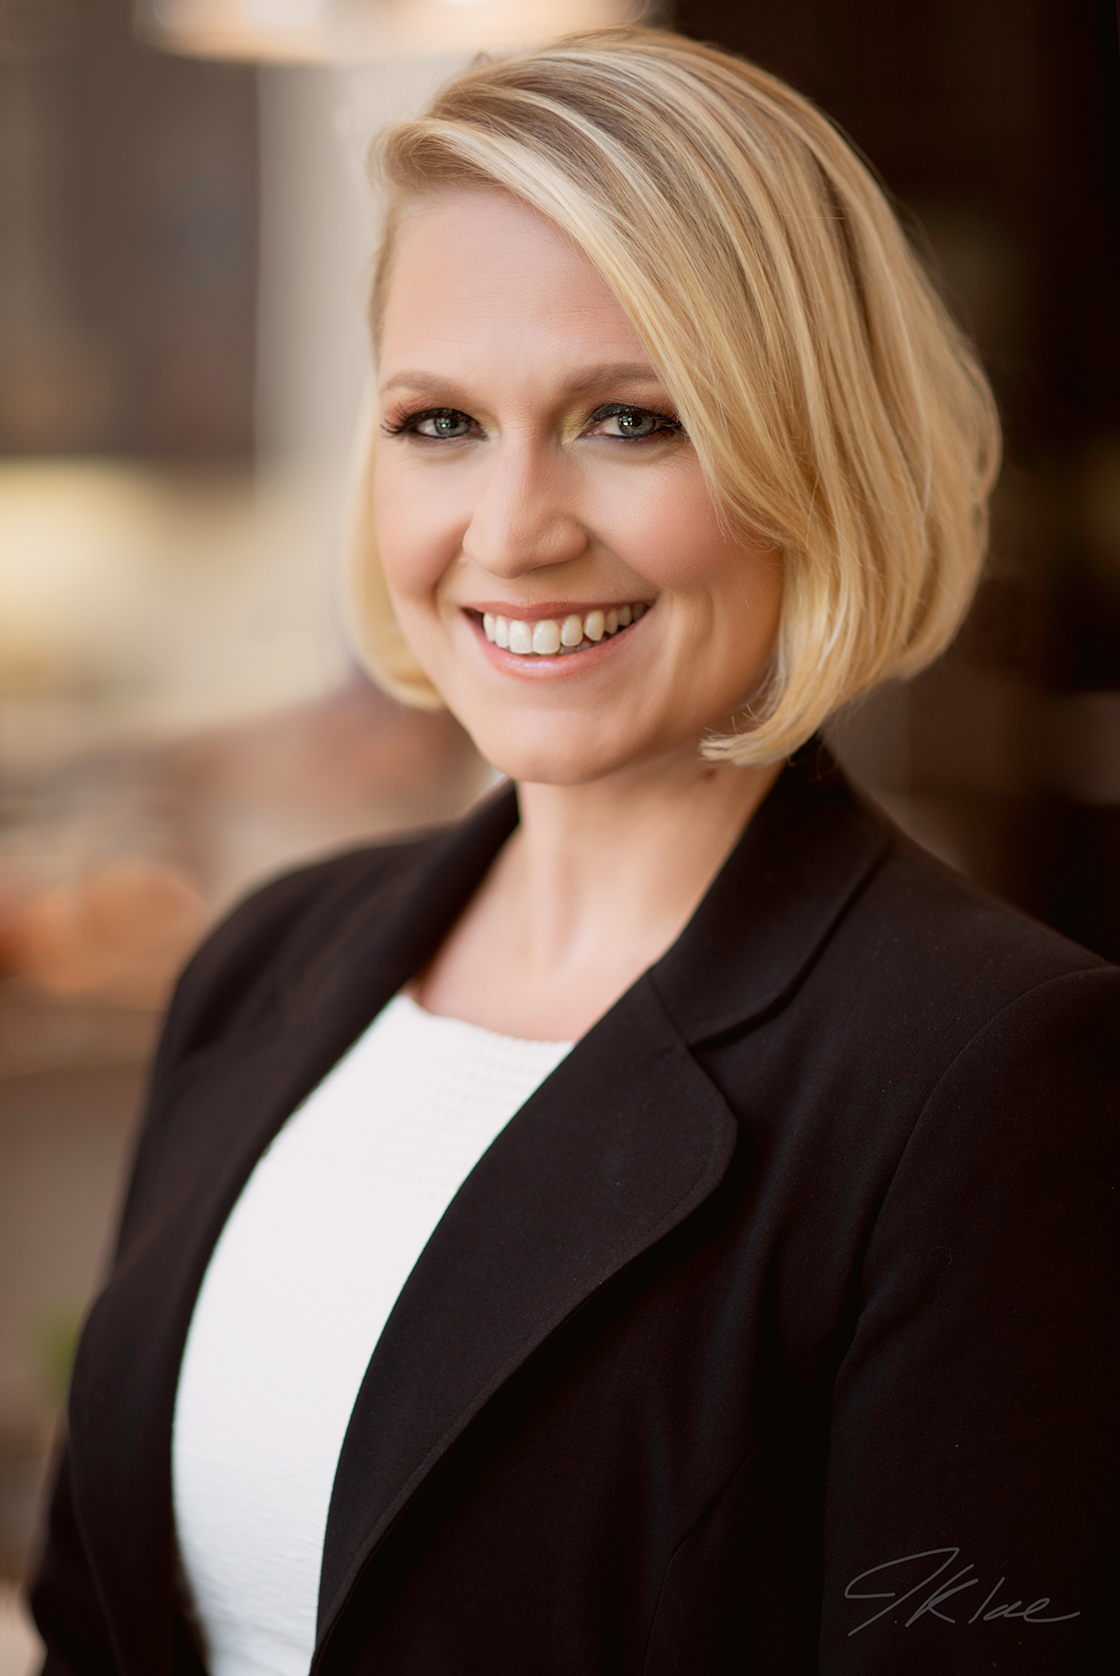 Professional Headshot of Female Dallas Lawyer Smiling